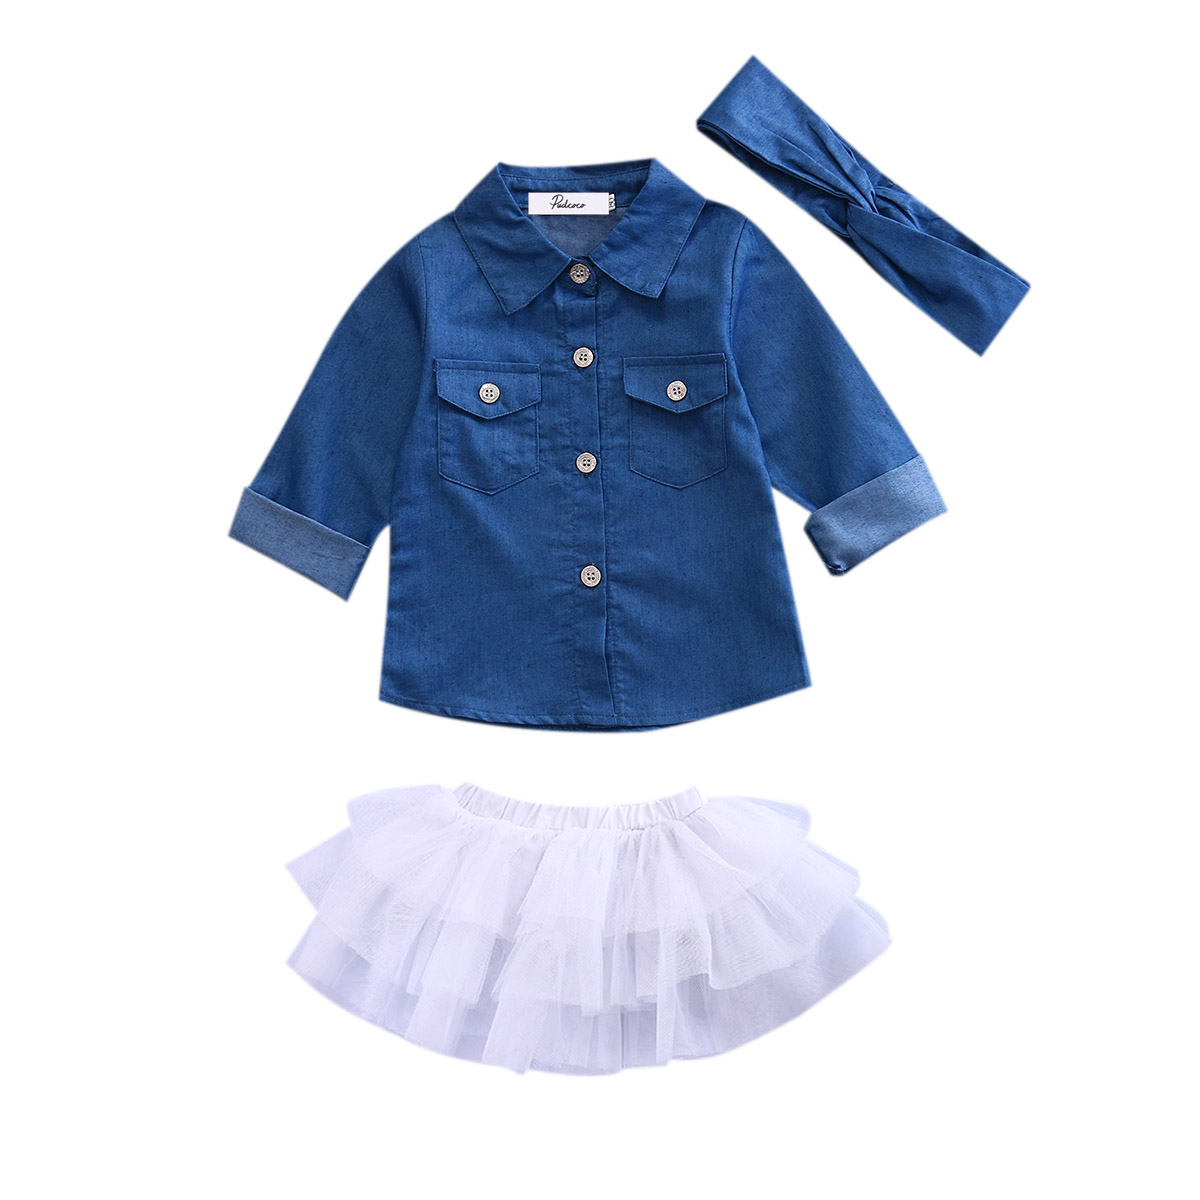 3PCS Toddler Kids Baby Girl Clothes Set Denim Tops T-shirt +Tutu Skirt Headband Outfits Summer Cowboy Suit Children Set 0-5Y family fashion summer tops 2015 clothers short sleeve t shirt stripe navy style shirt clothes for mother dad and children